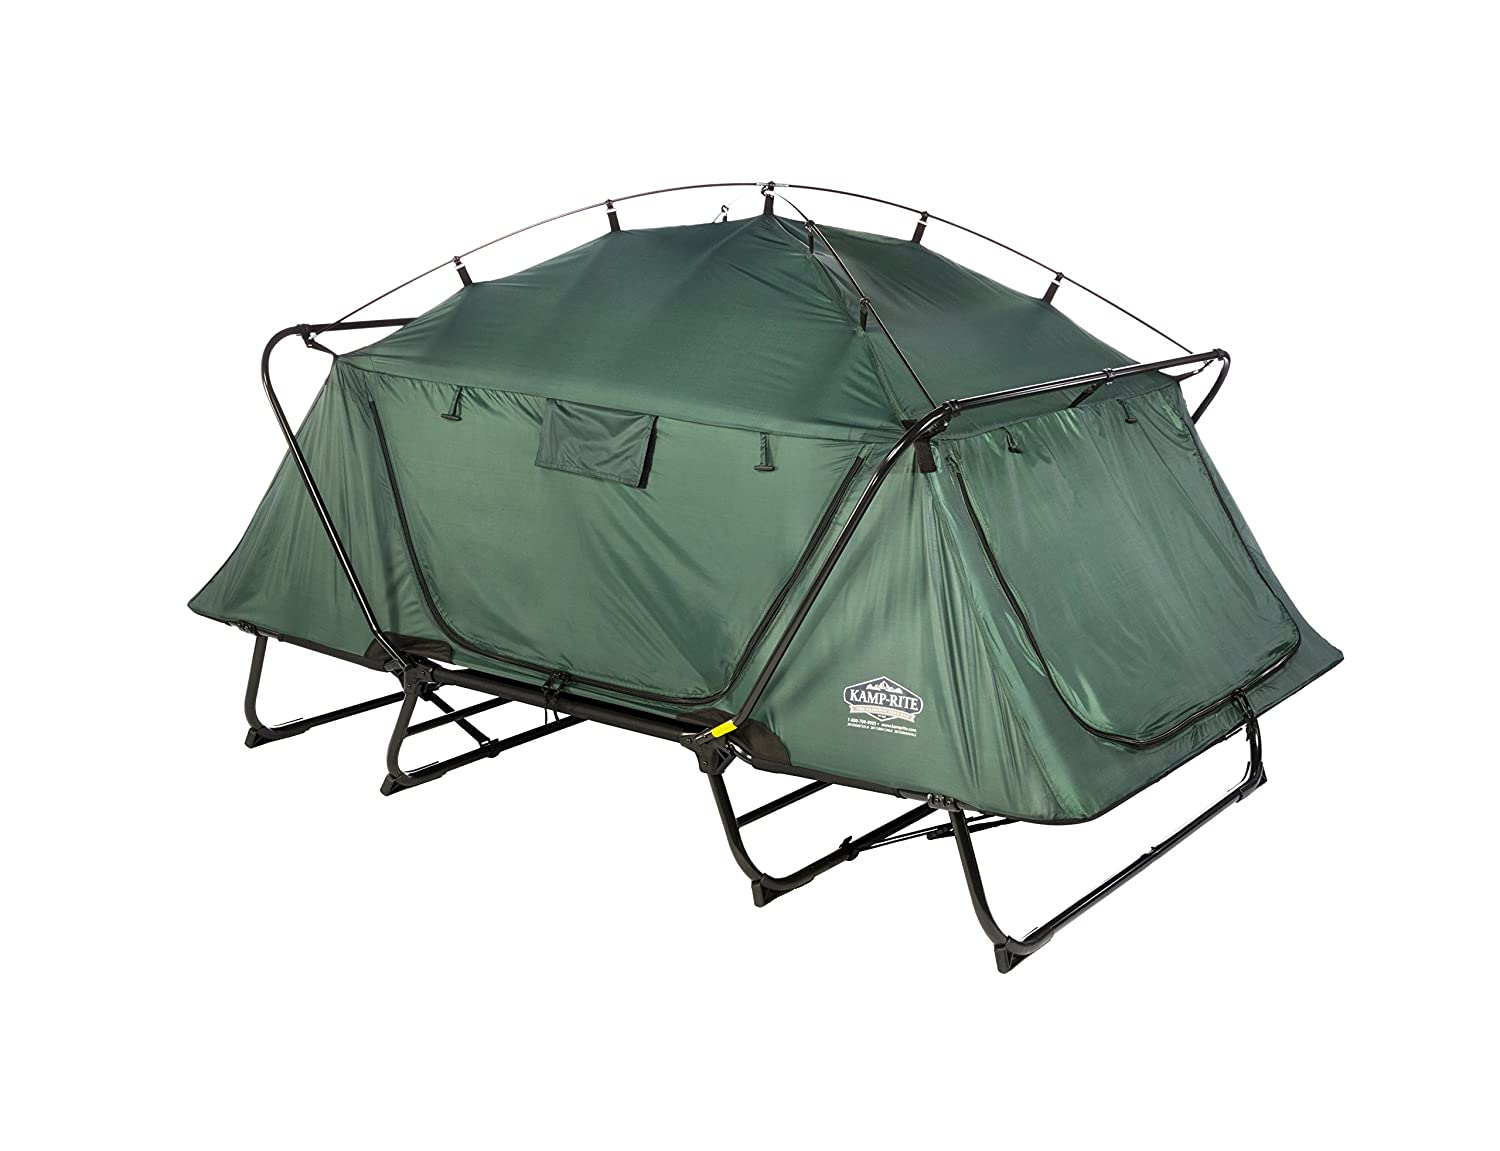 Amazon.com  K&Rite Double TentCot  C&ing Cots  Sports u0026 Outdoors  sc 1 st  Amazon.com : tent with cot - memphite.com